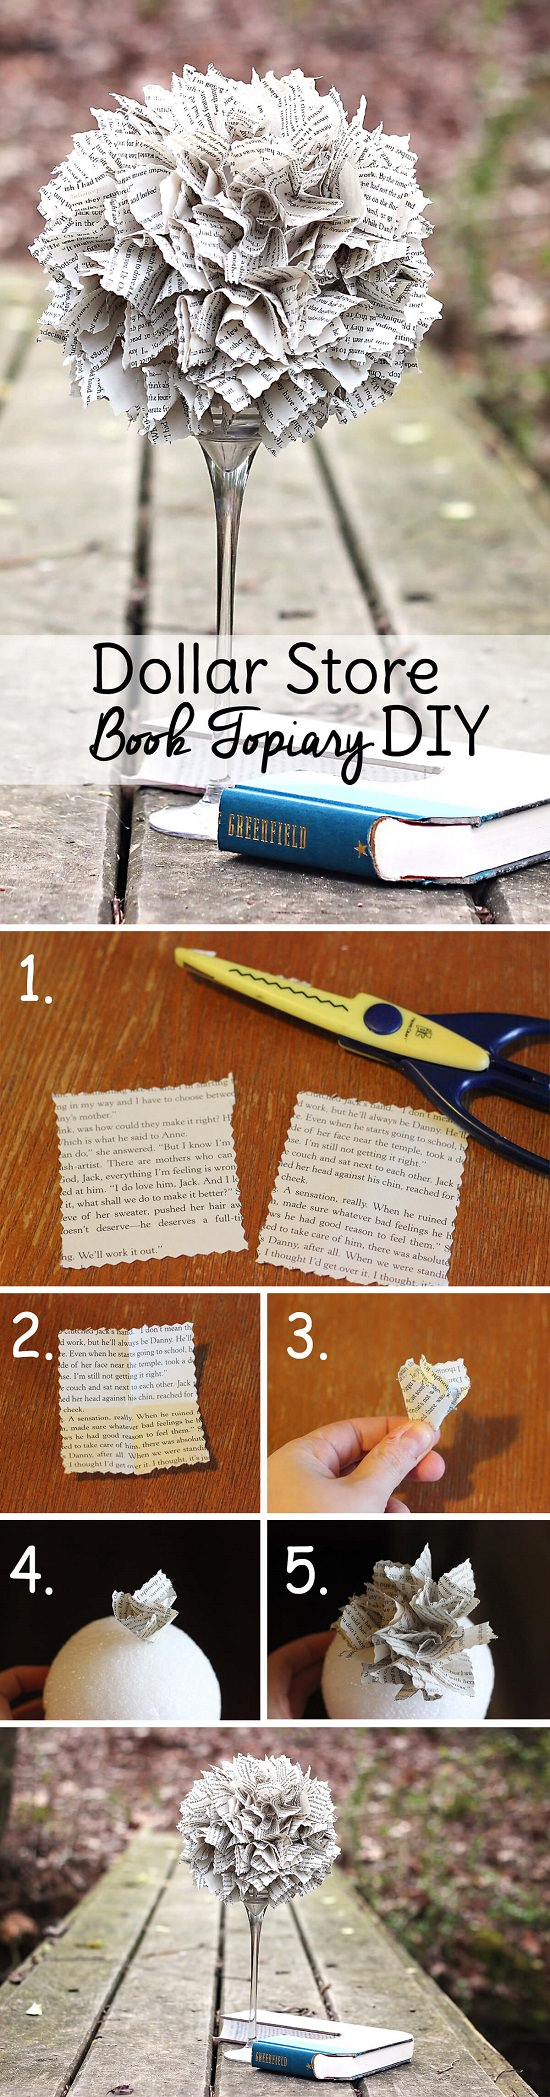 DIY Projects with Old Books5